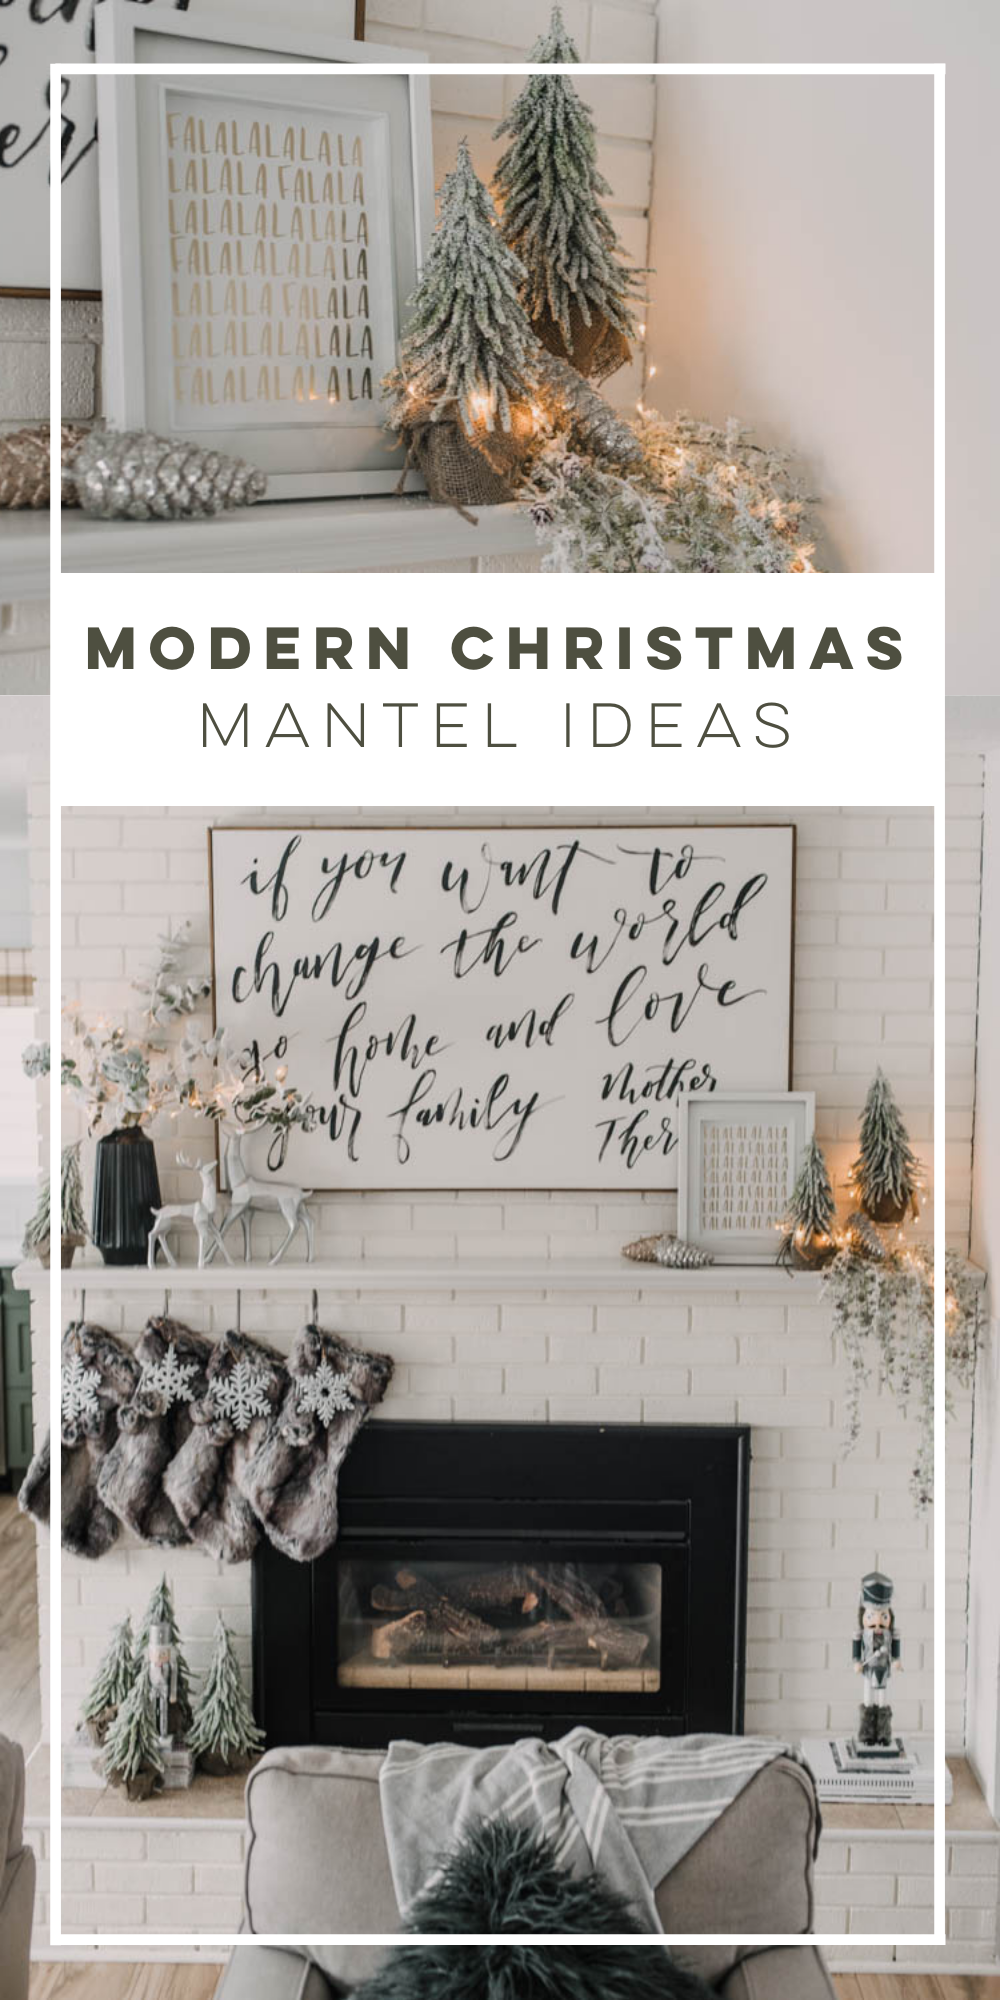 Modern holiday mantel ideas... full of black, white, metallics, and frosted greenery